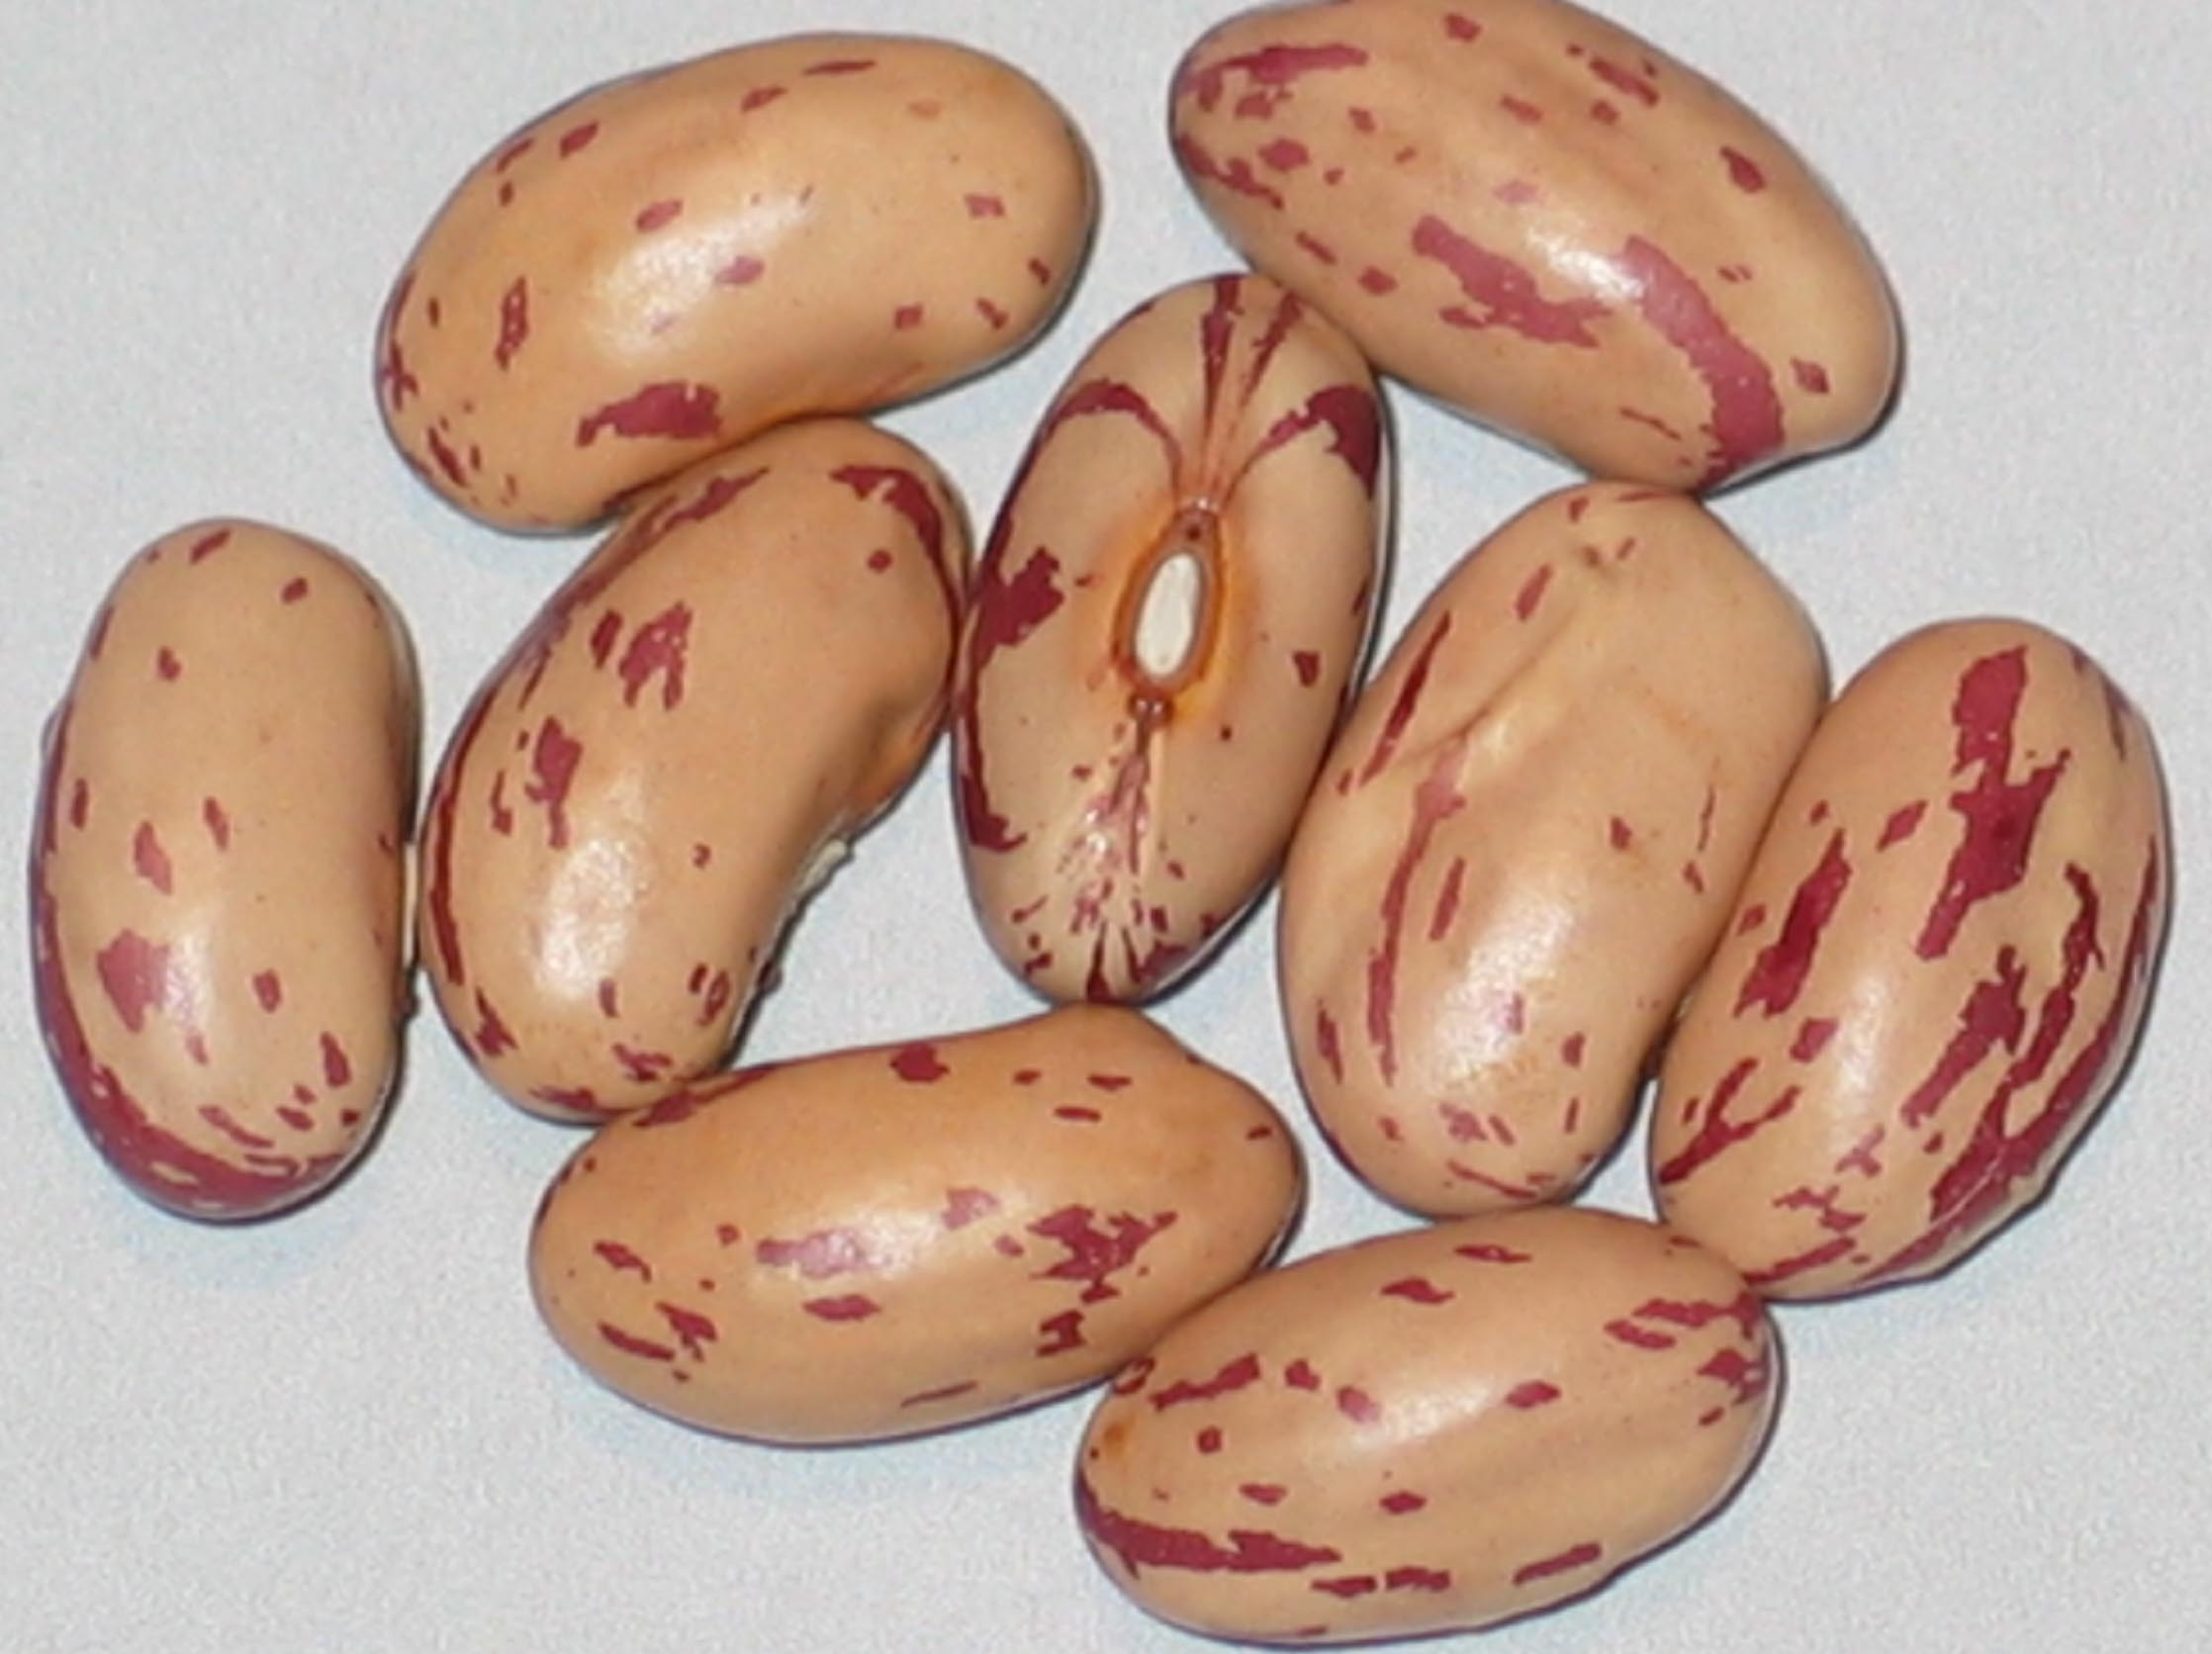 image of Valley View beans